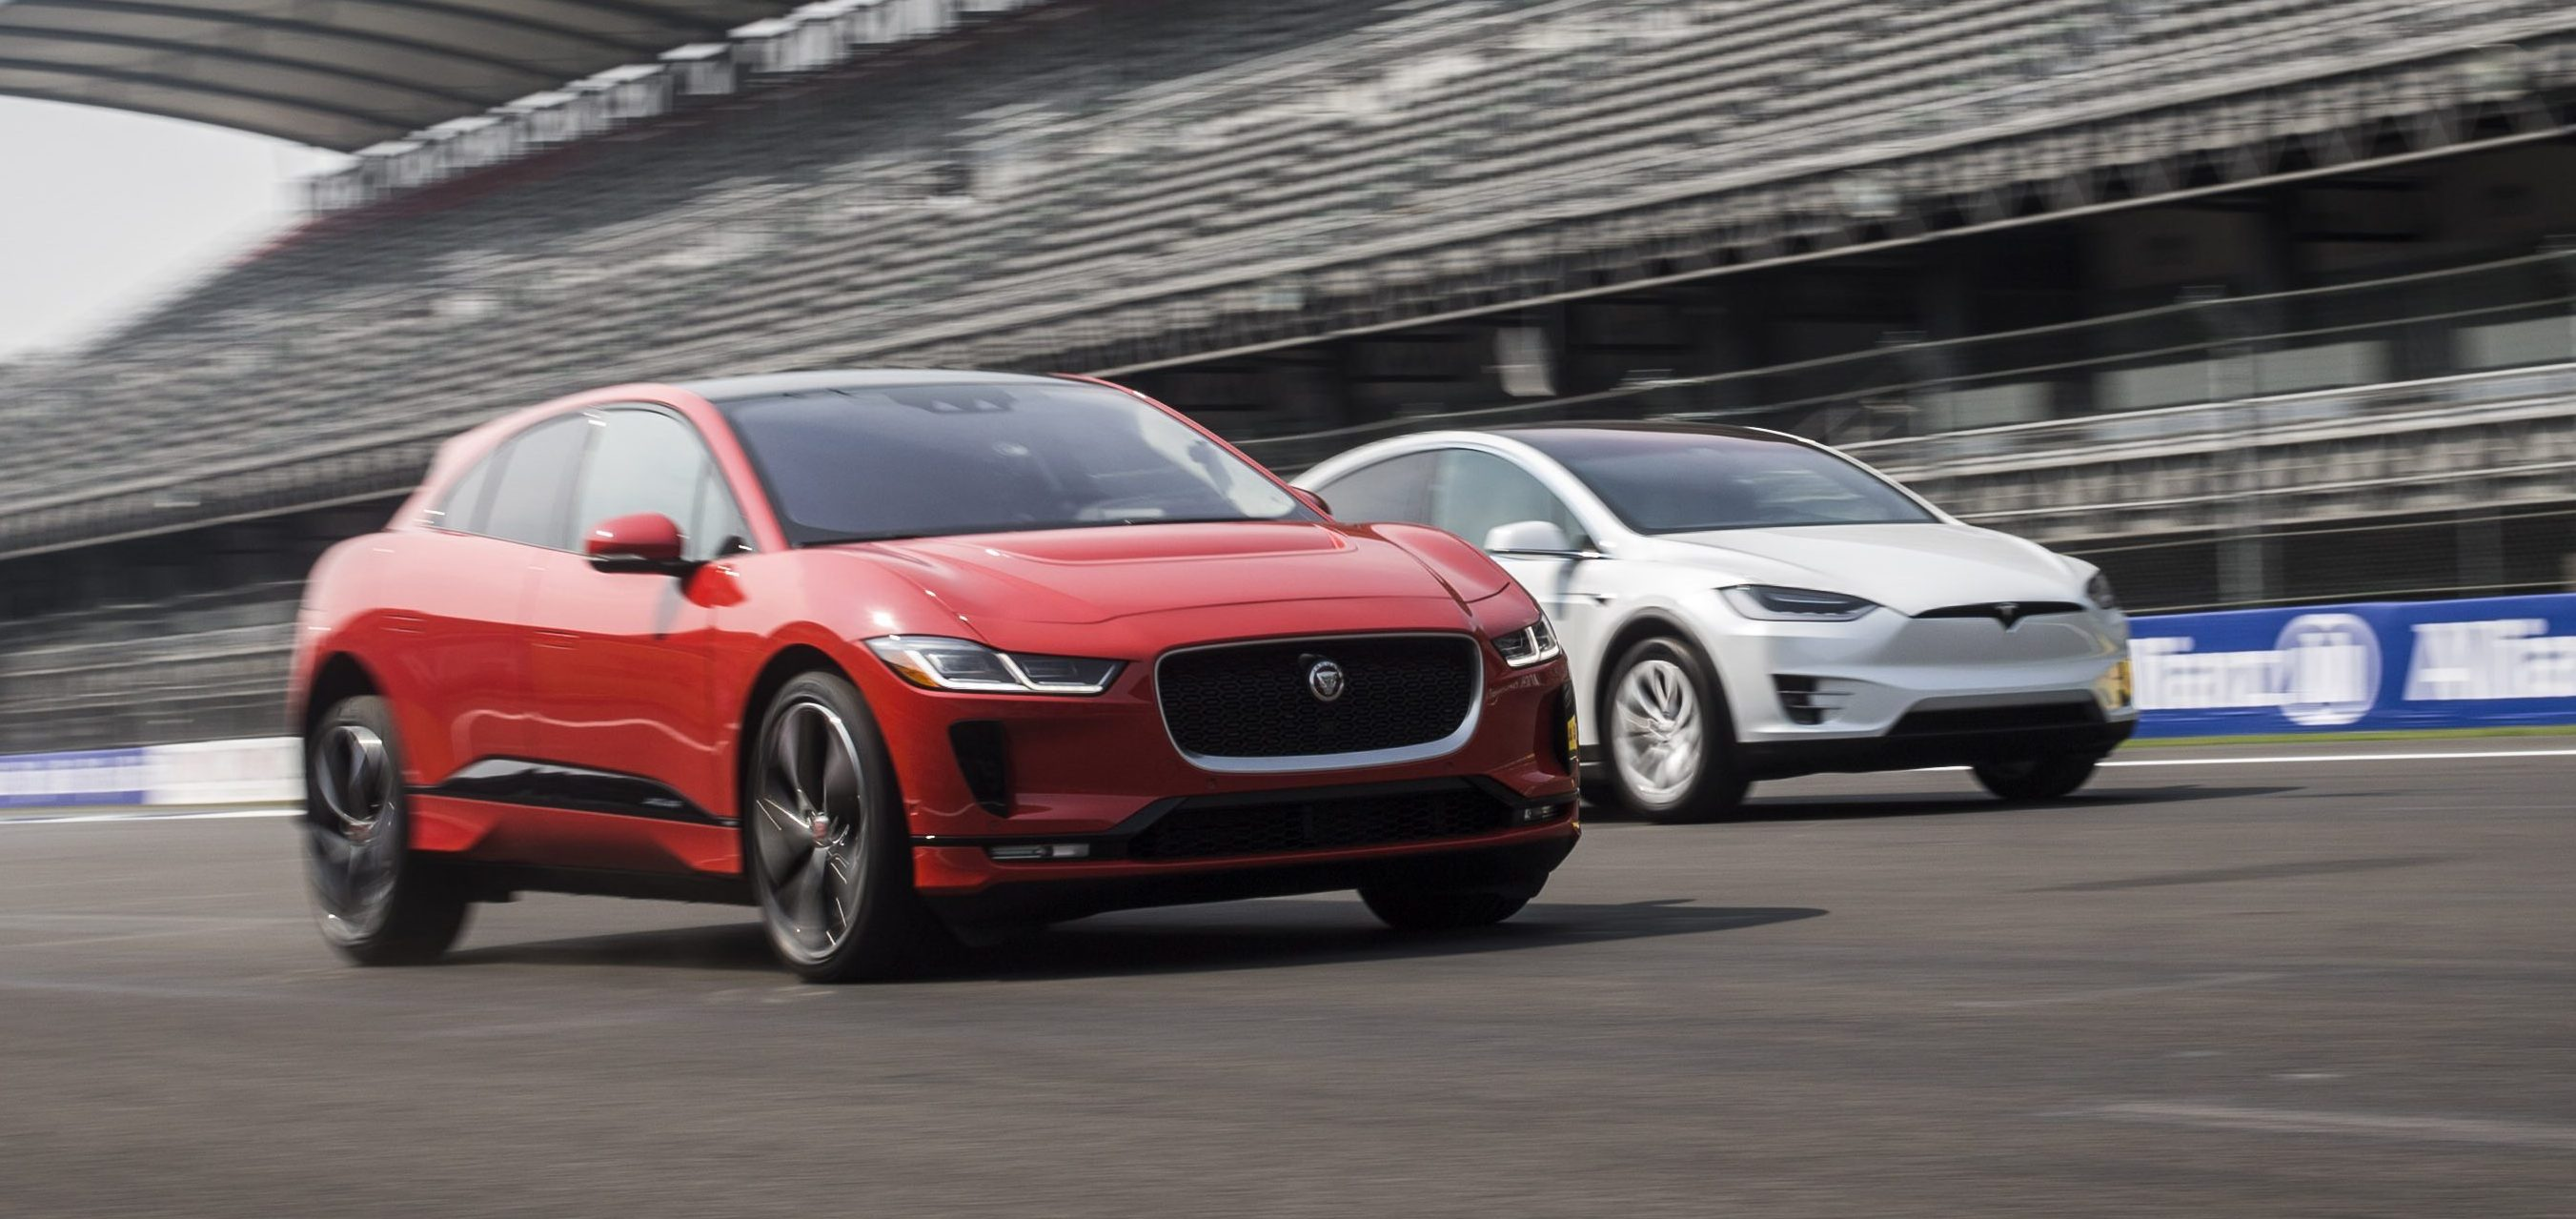 Jaguar goes after Tesla with $3,000 incentive for owners to buy I-Pace - Electrek